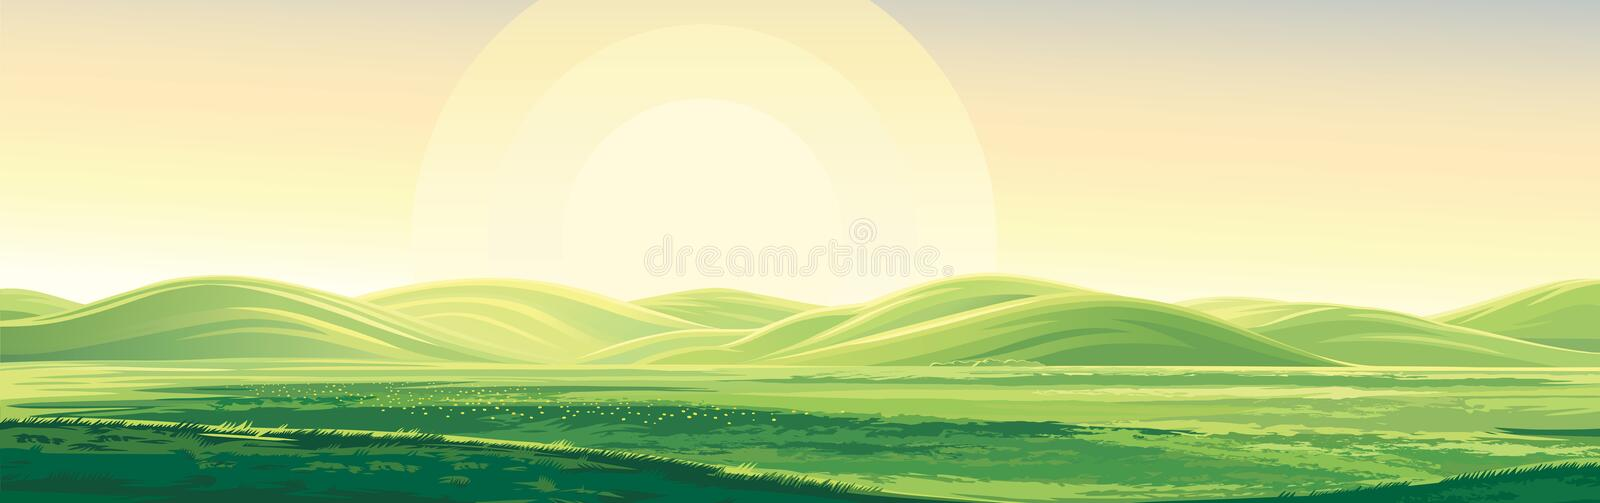 Summer landscape with hills. vector illustration